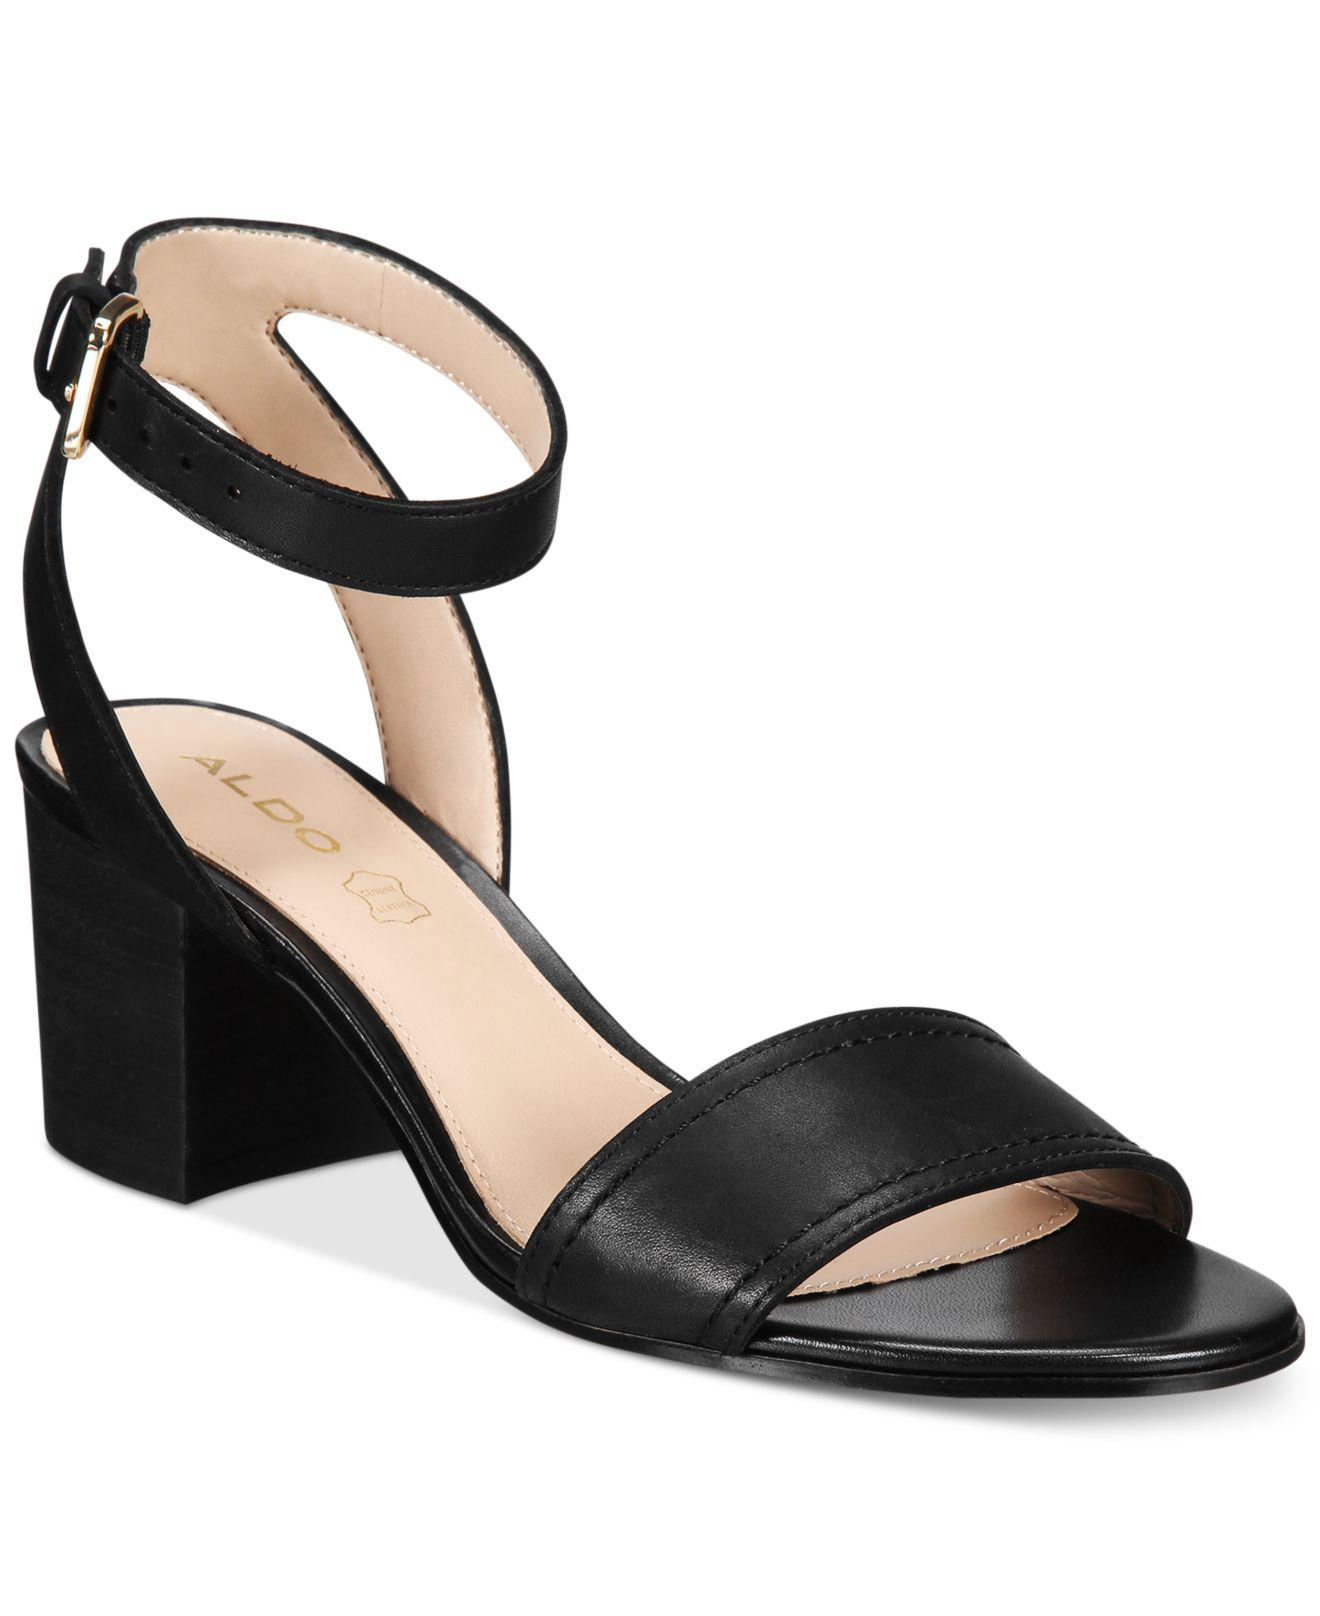 ce3c69f7311e Lyst - ALDO Women s Lolla Two-piece Block-heel Sandals in Black